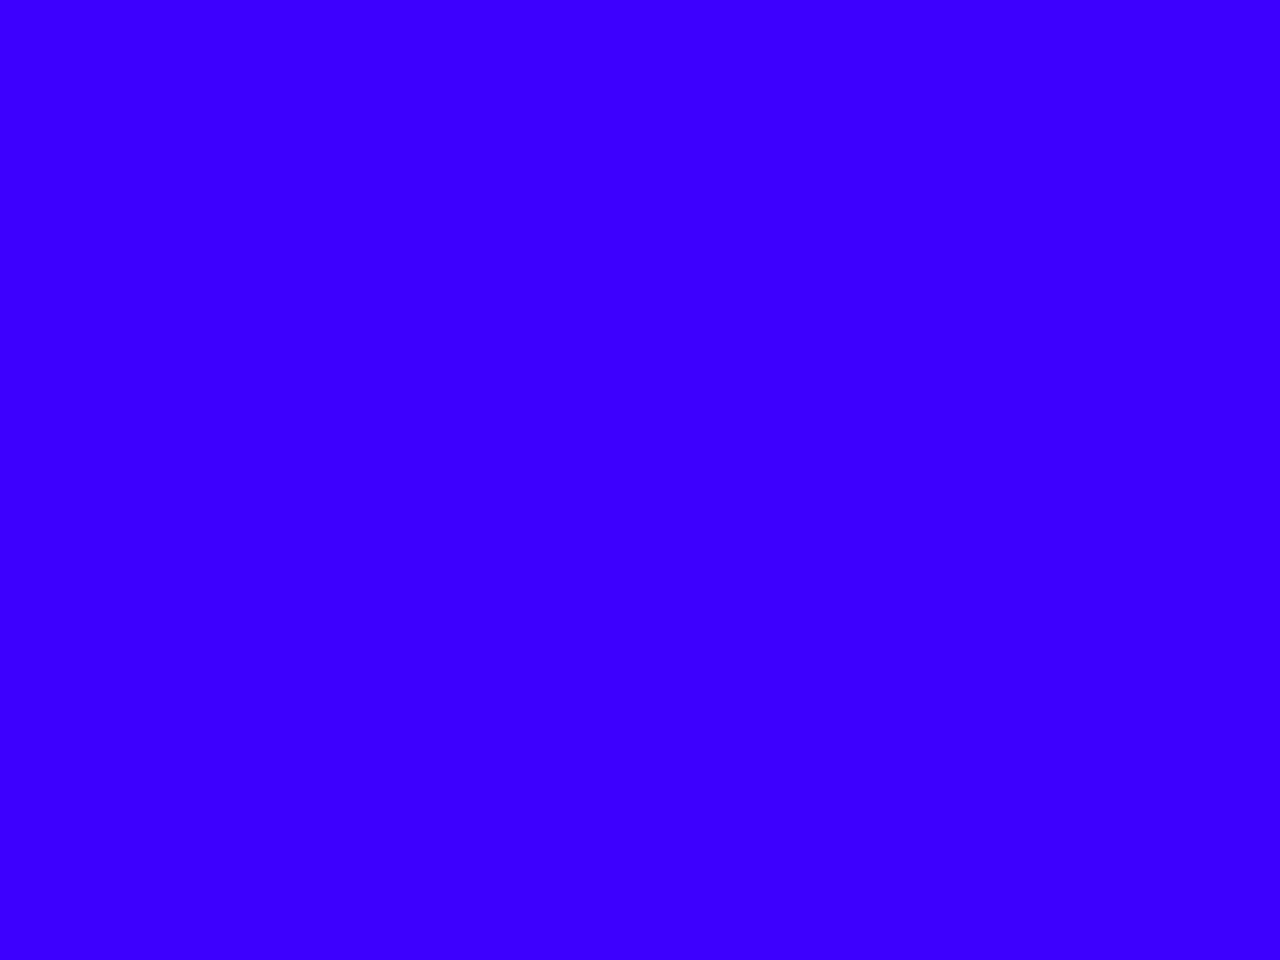 1280x960 Electric Ultramarine Solid Color Background